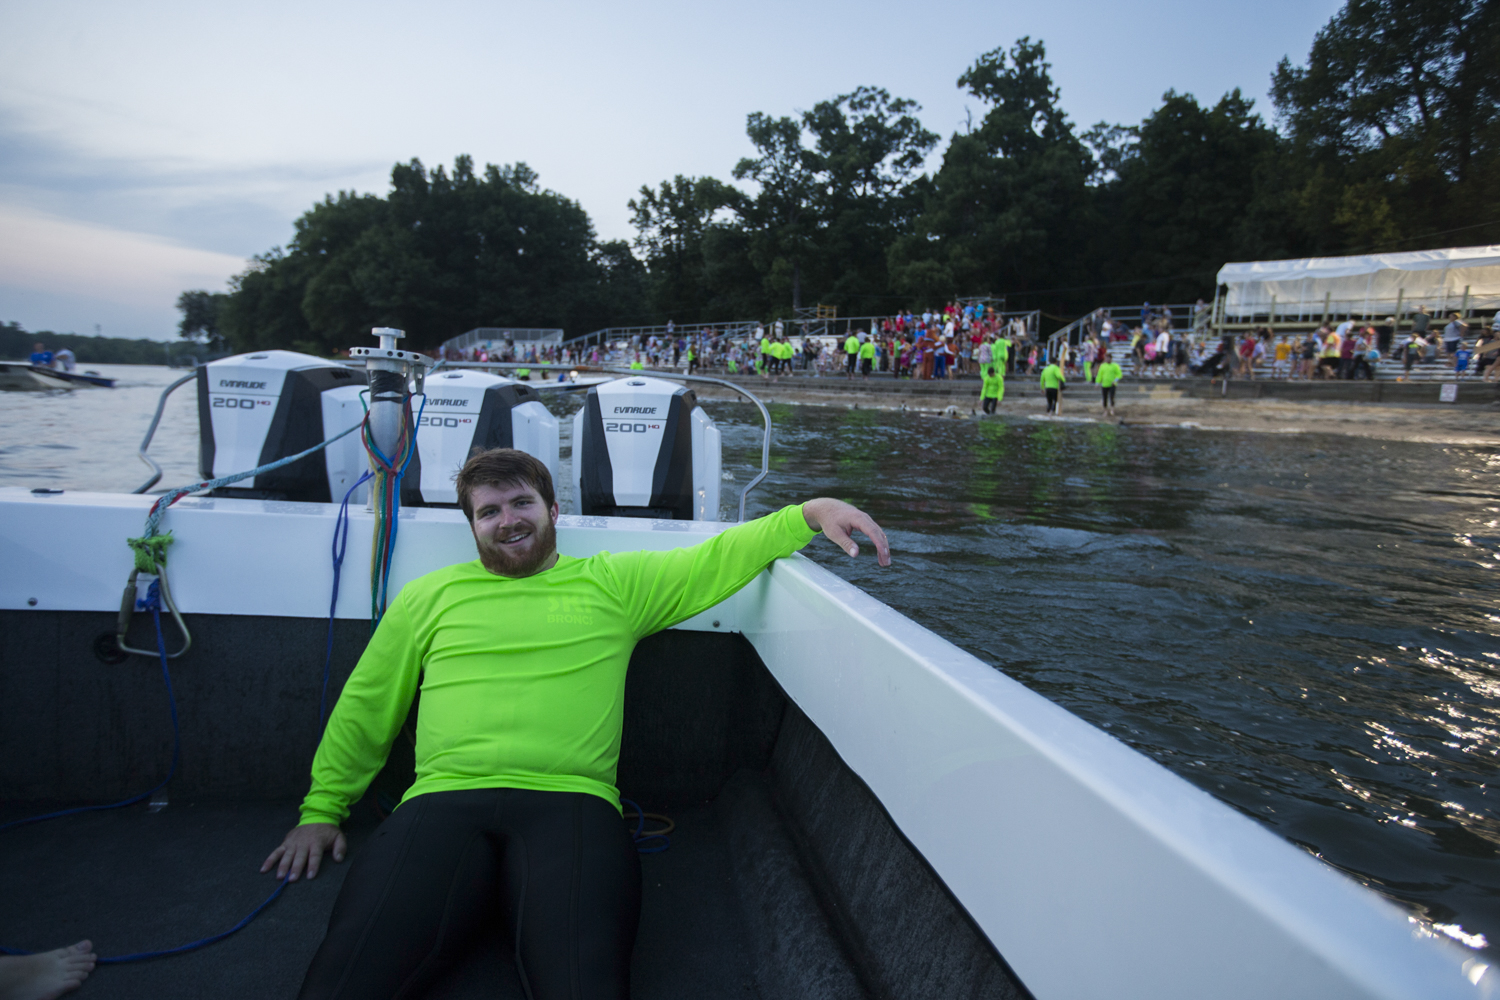 Jay Carlstrom relaxes in the back of a boat while retrieving a Ski Bronc dock down river after the evening's show. [SCOTT P. YATES/RRSTAR.COM STAFF]